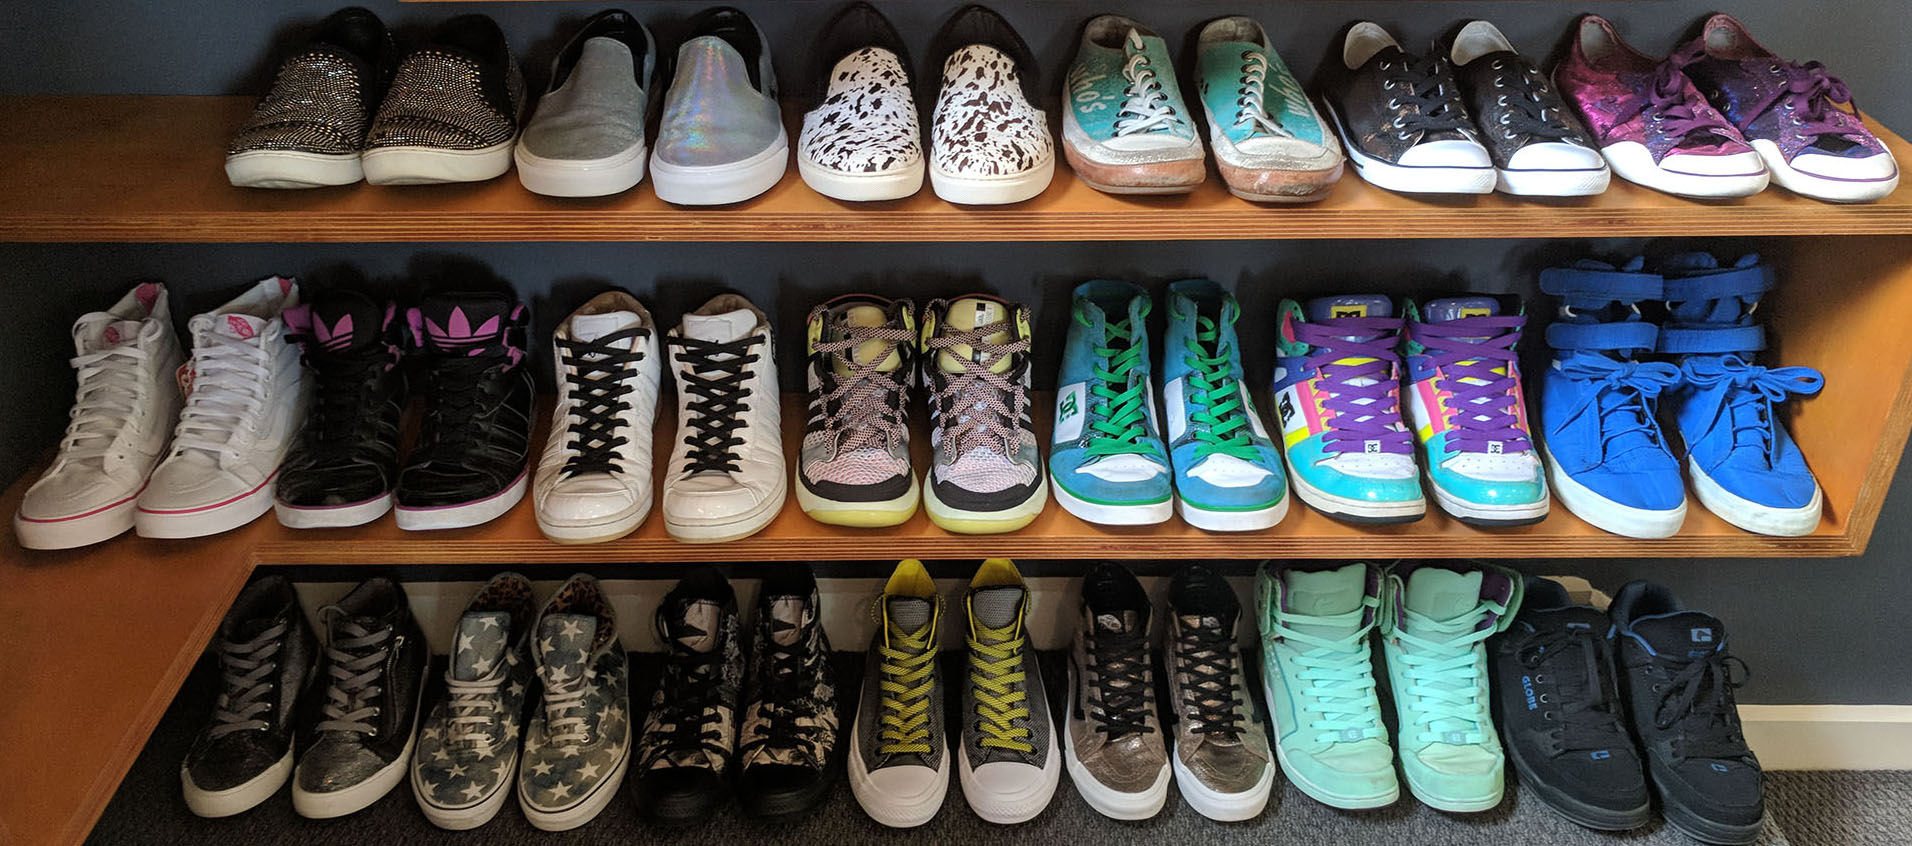 Warning: Serious sneaker enthusiast!